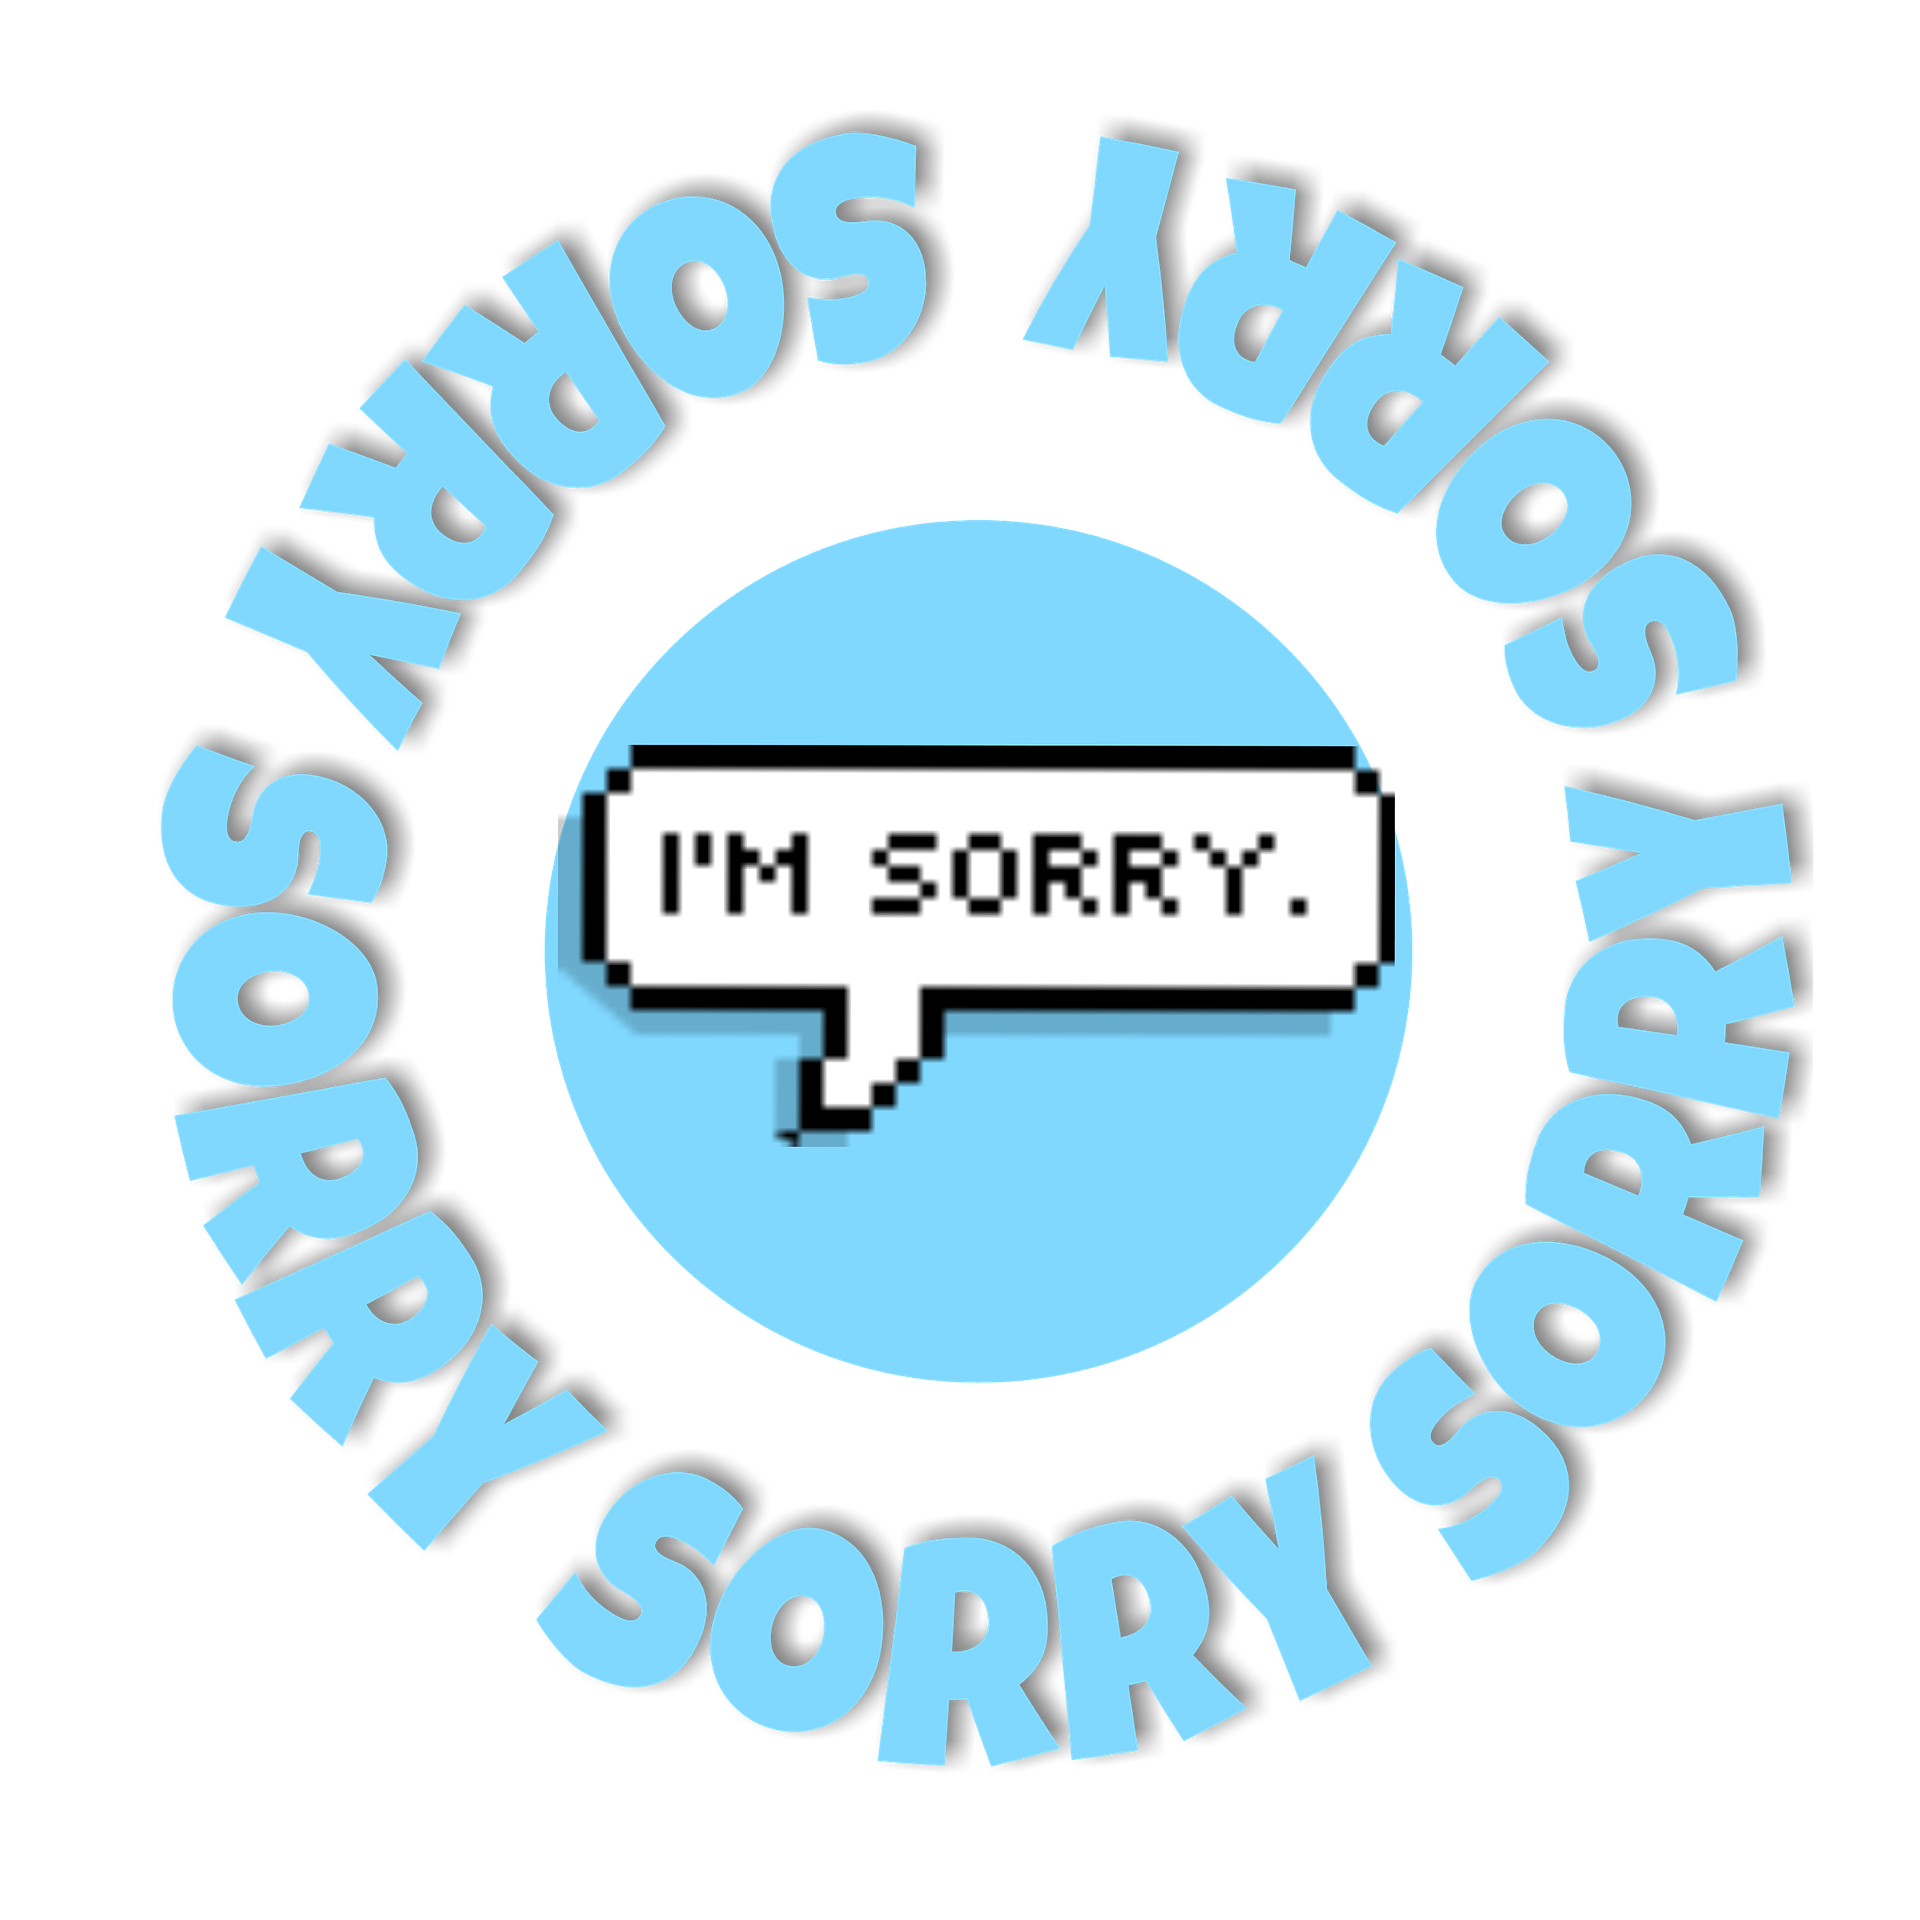 A Burned Out Apology - I was wrong.